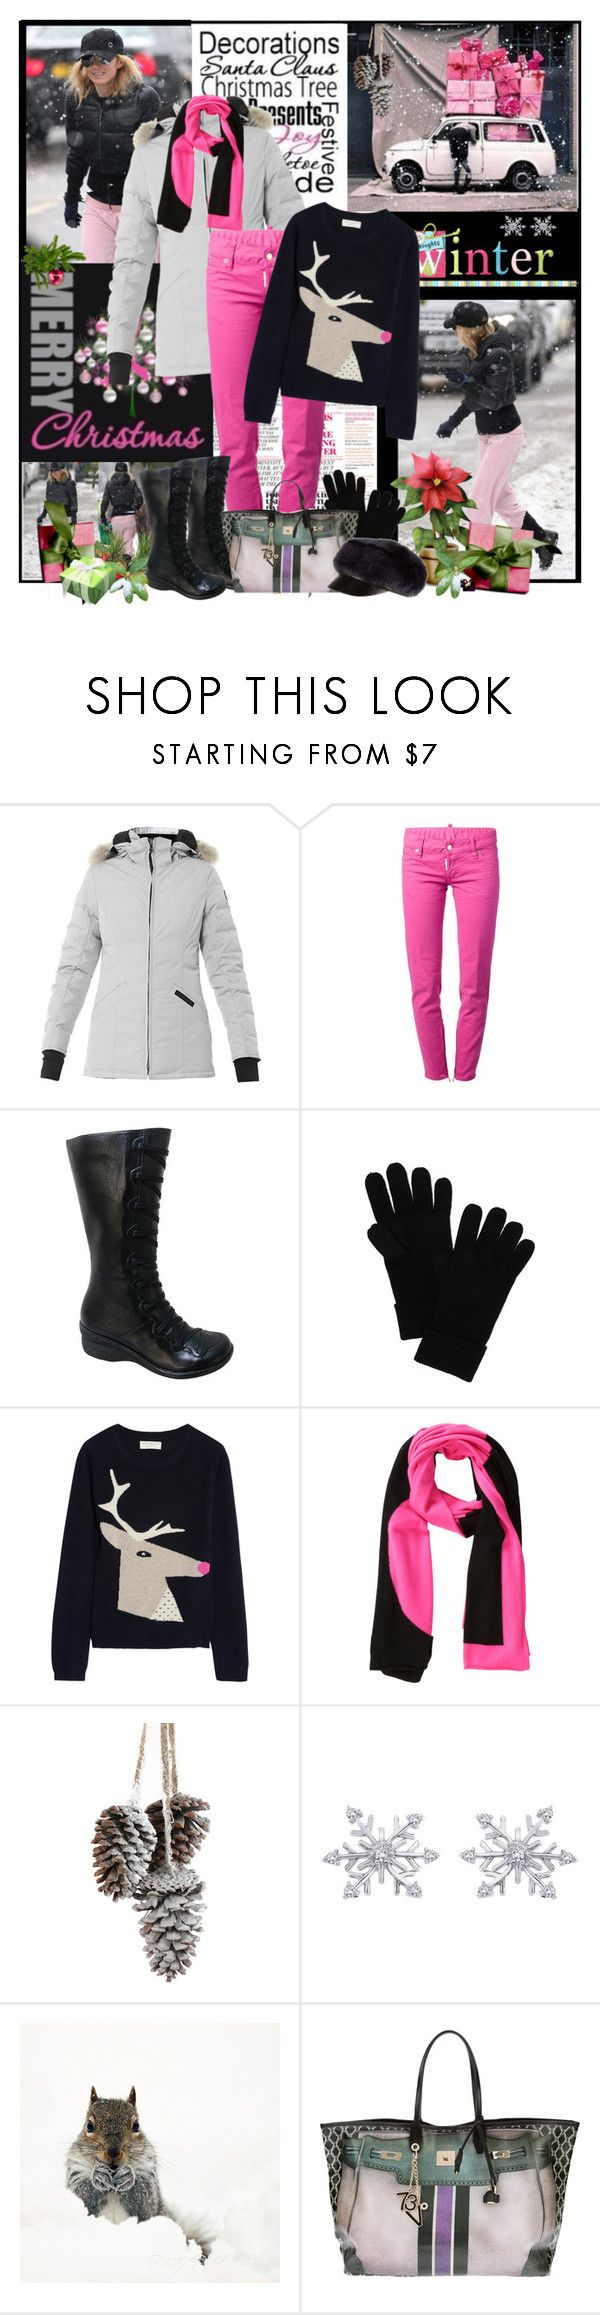 """""""Pink Christmas"""" by easystyle ❤ liked on Polyvore featuring Canada Goose, Dsquared2, Miz Mooz, rag & bone, Chinti and Parker, Lisa Perry, V°73, Eugenia Kim, Boots and jeans"""